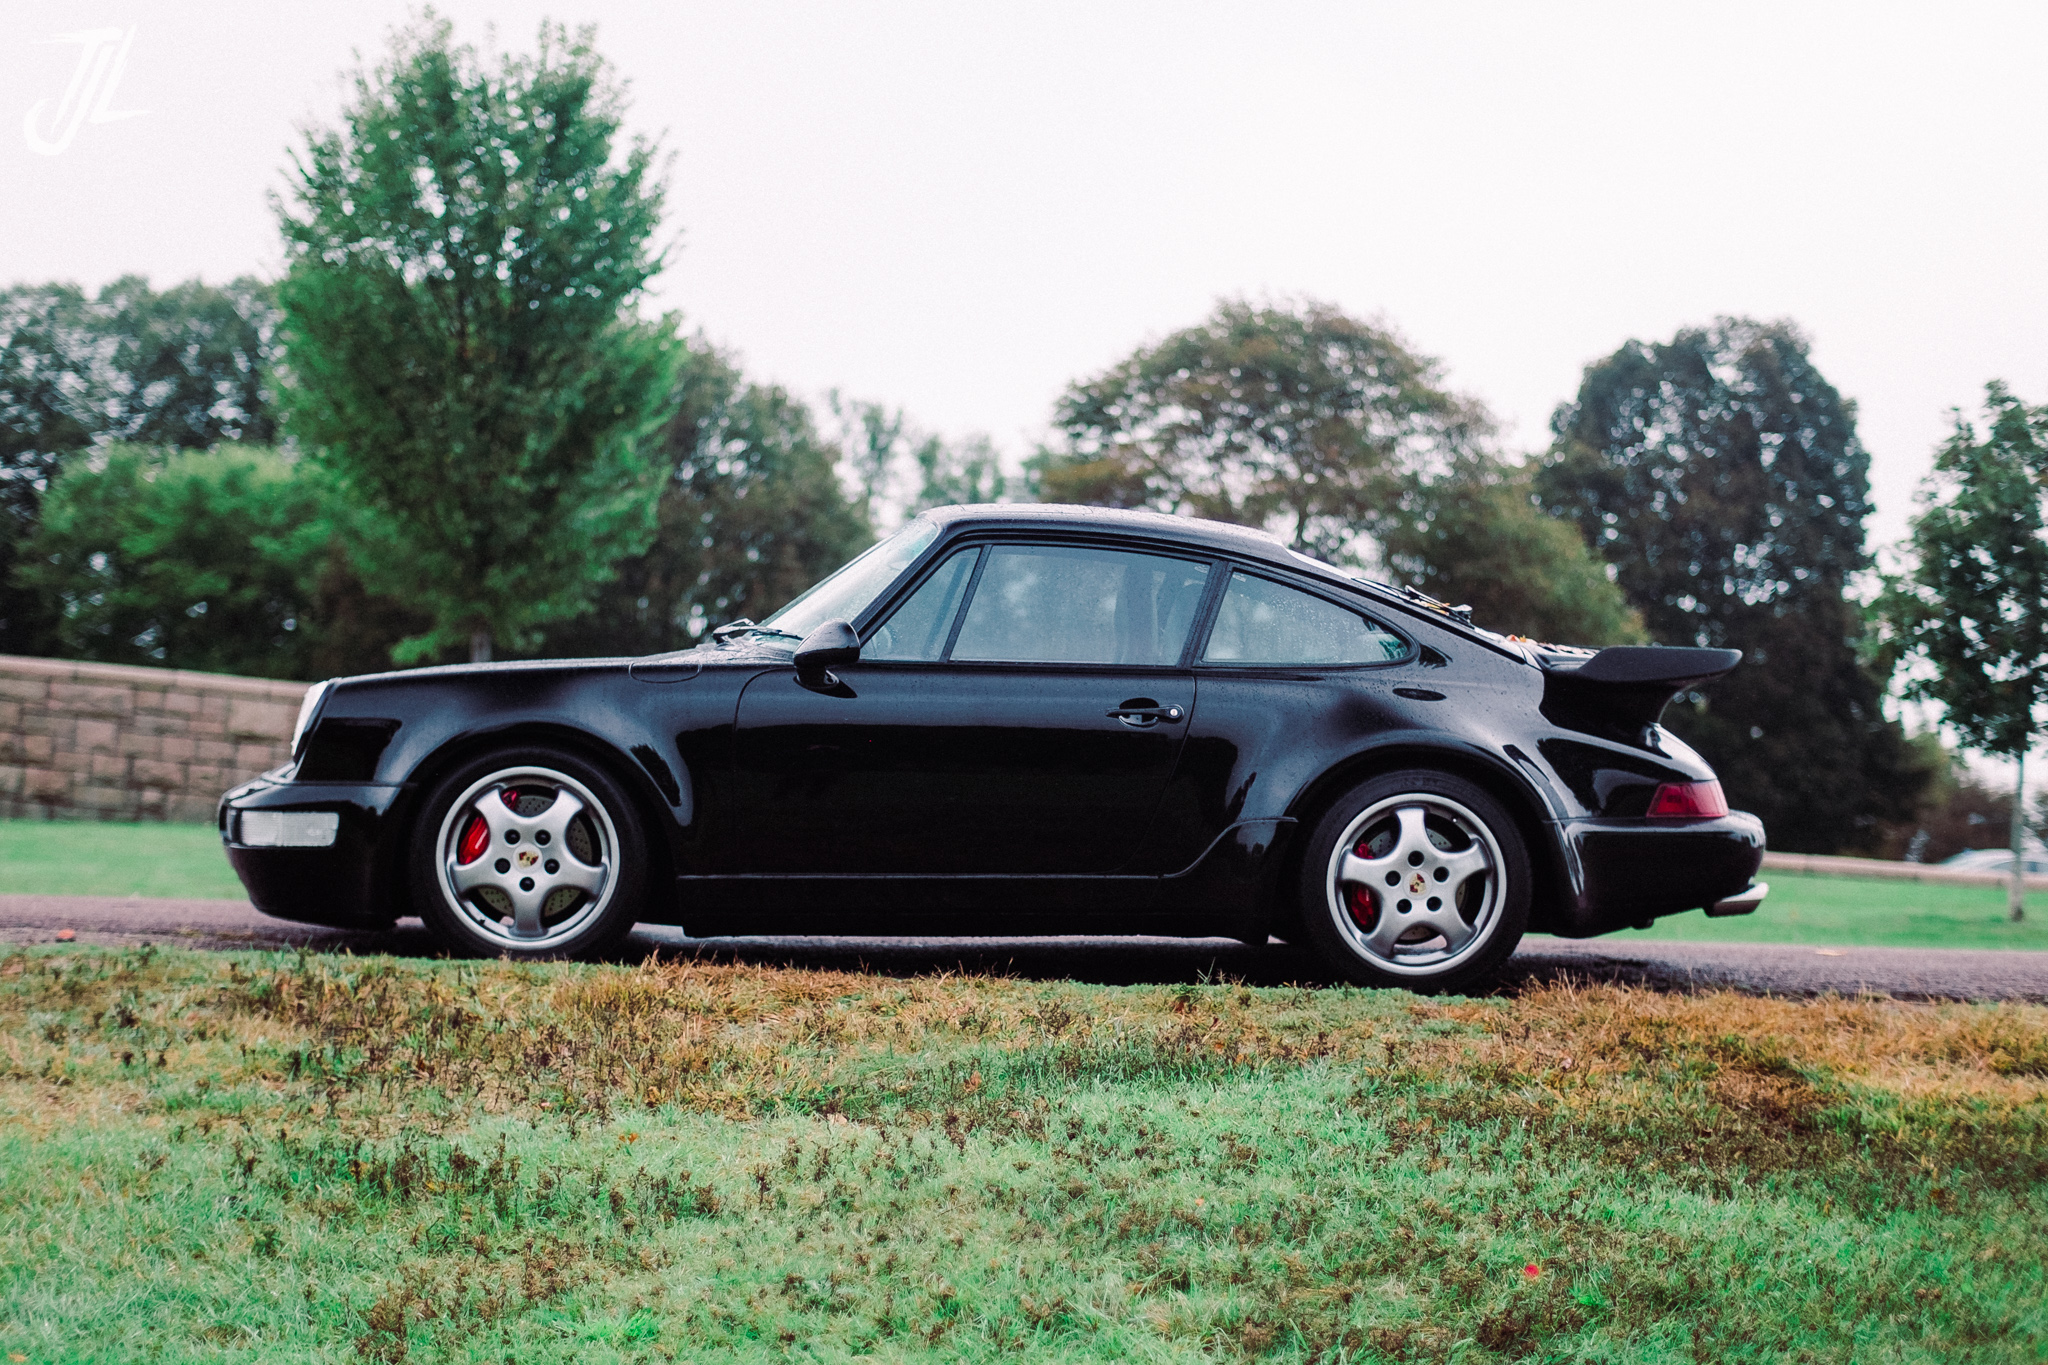 turbo964 compressed (6 of 17).jpg